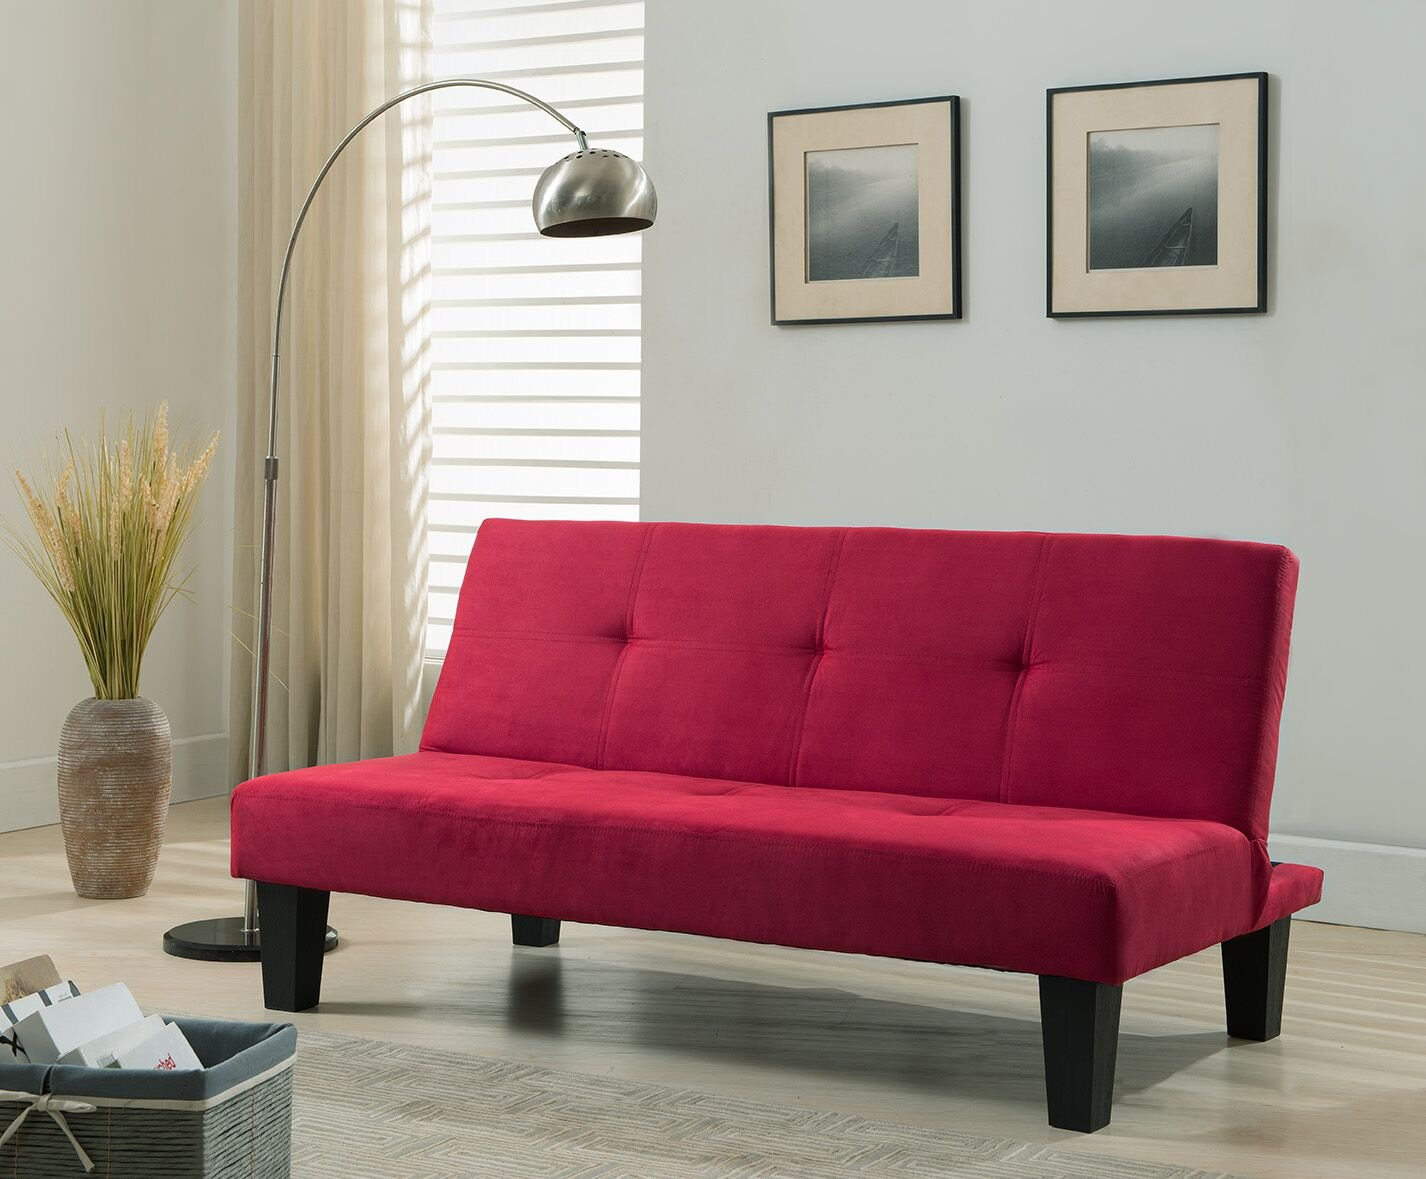 Kings Brand Furniture Microfiber With Adjule Back Klik Klak Sofa Futon Bed Sleeper Red